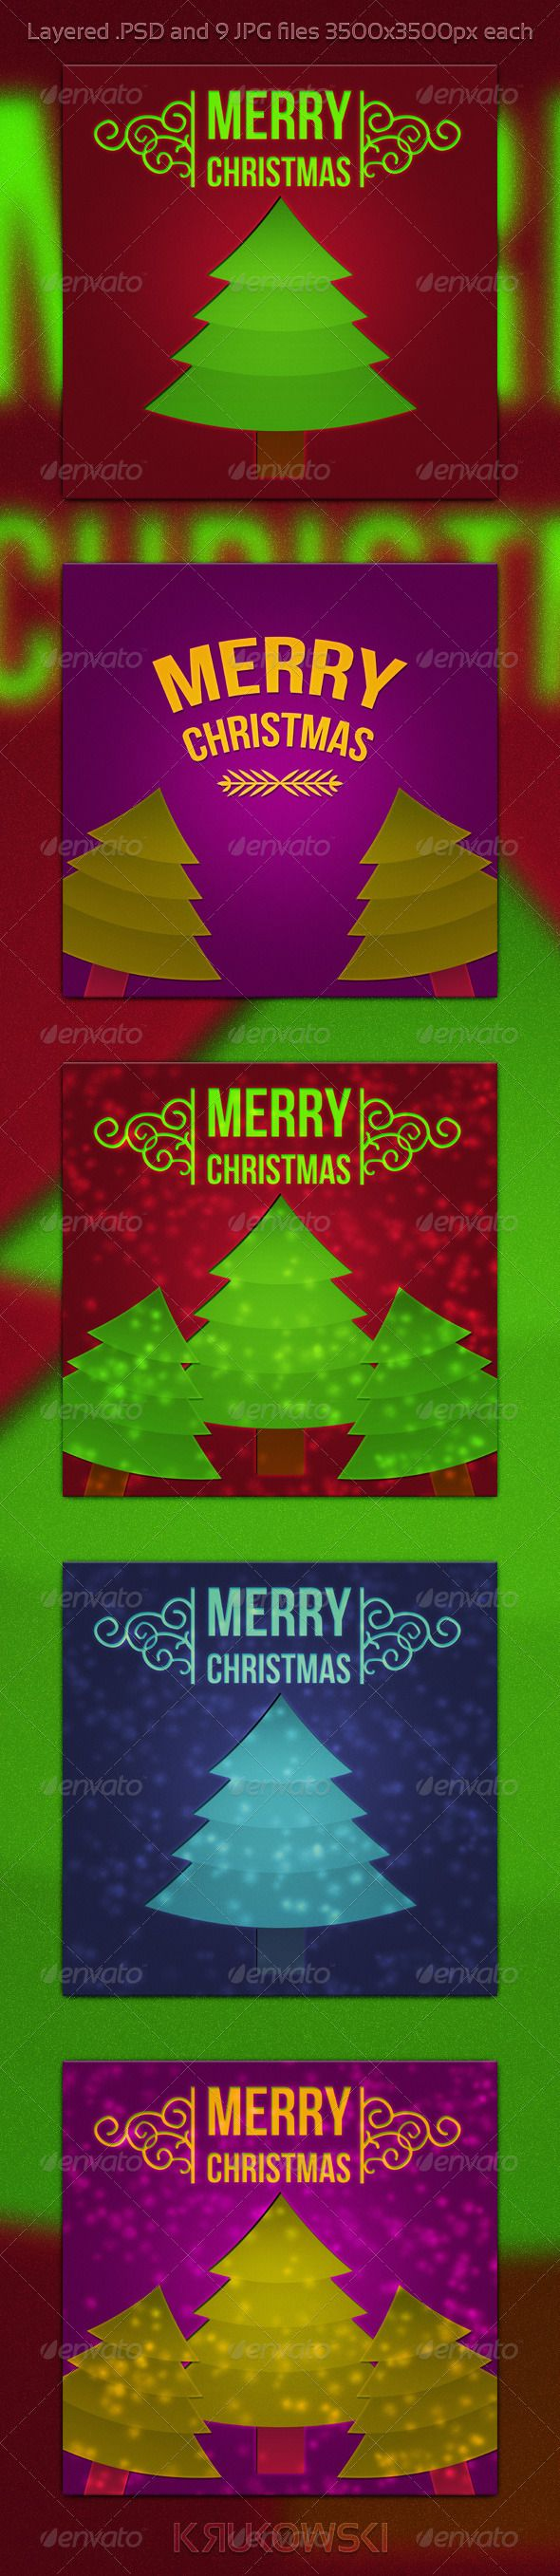 Digital banner design for psd files - Christmas Psd Background